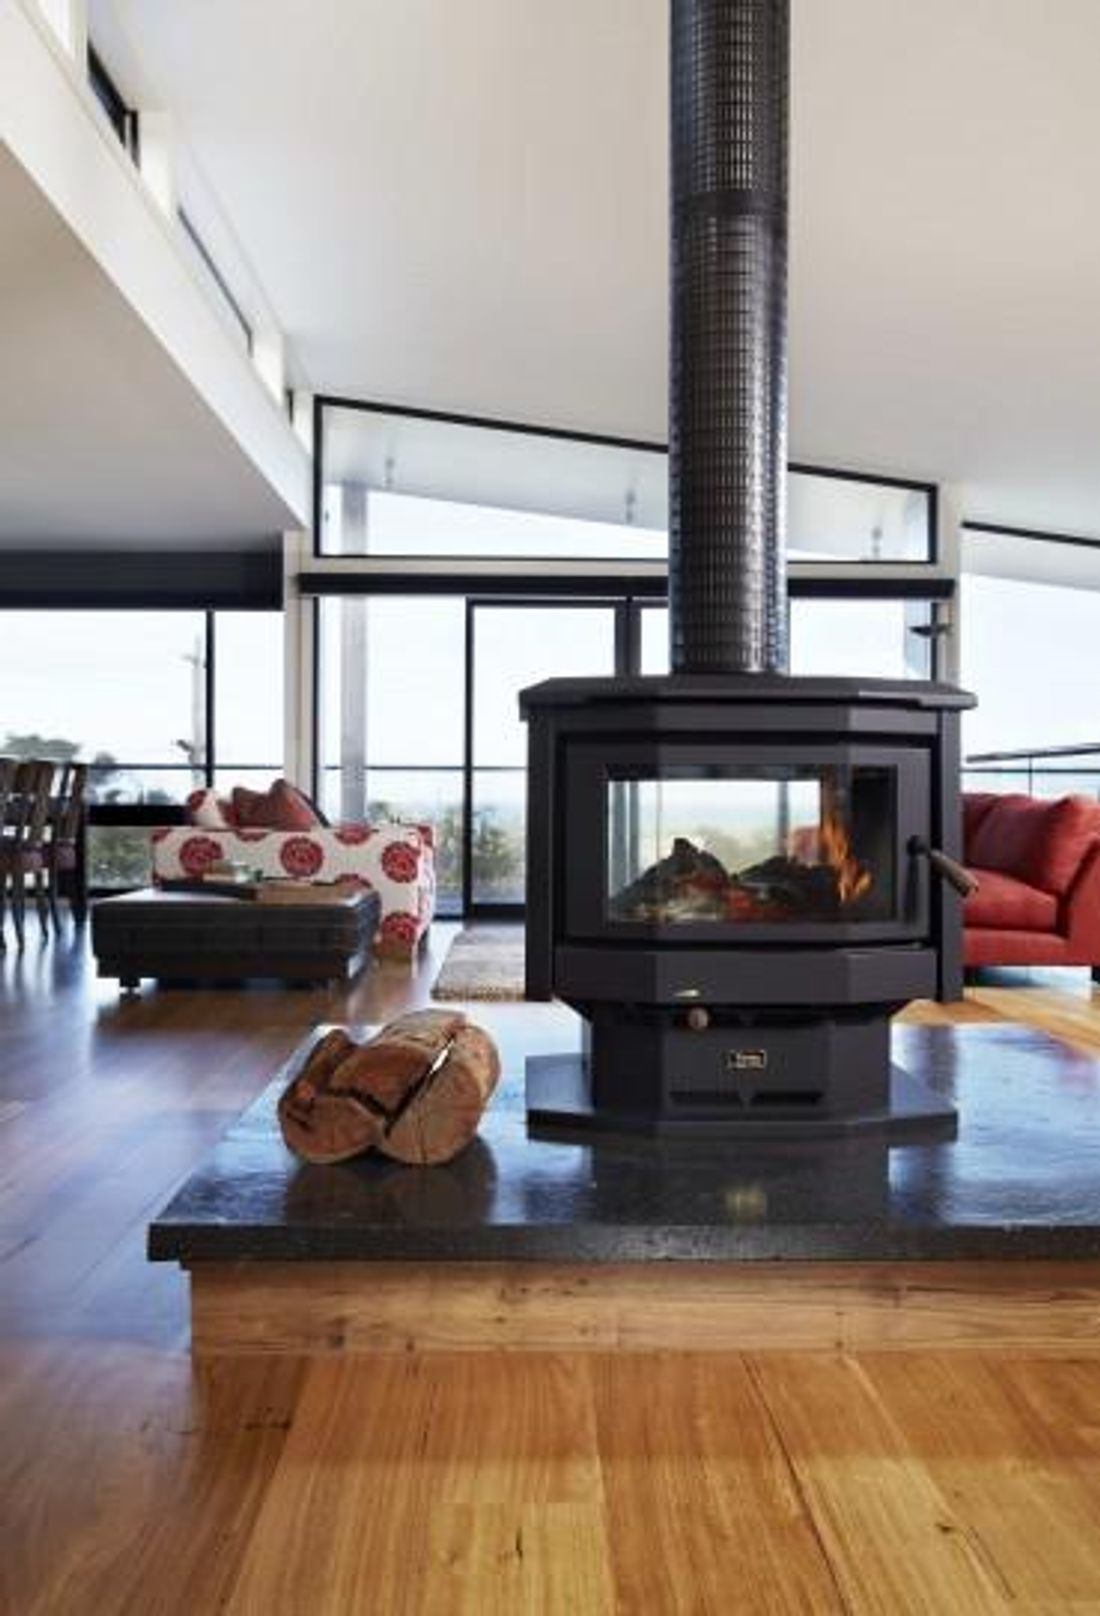 where should you put a fireplace hipages com au